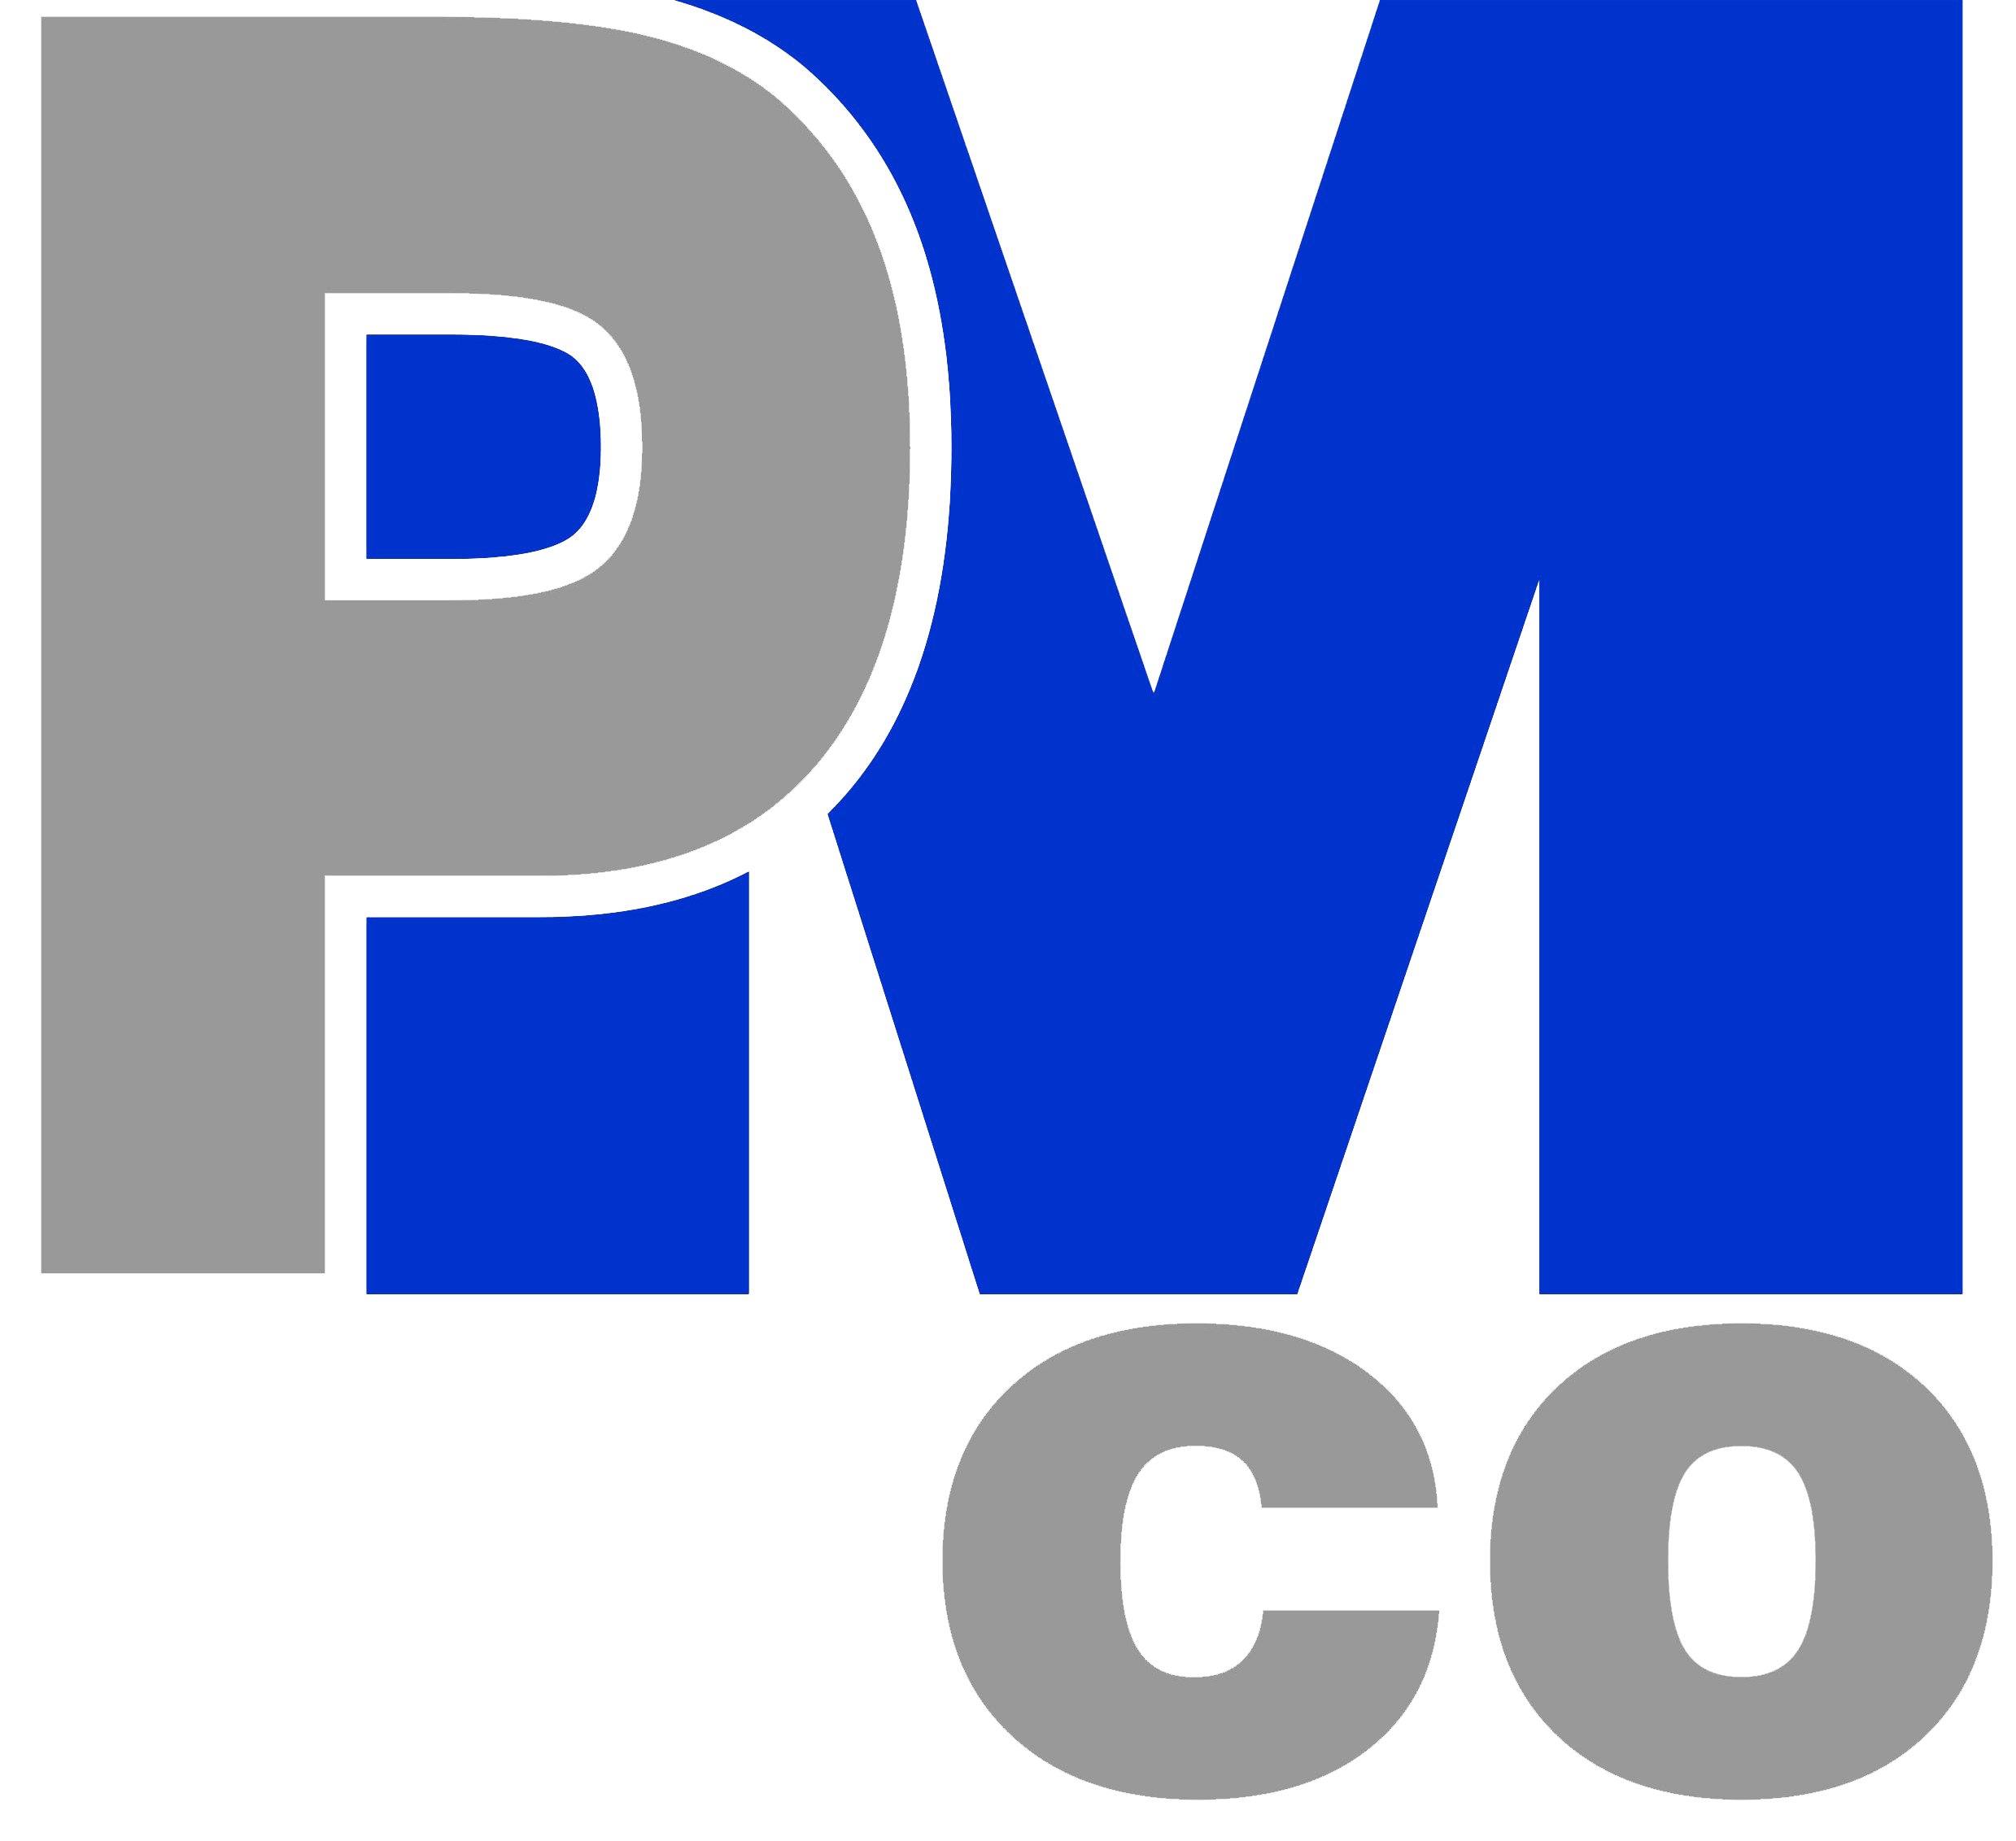 PMCO